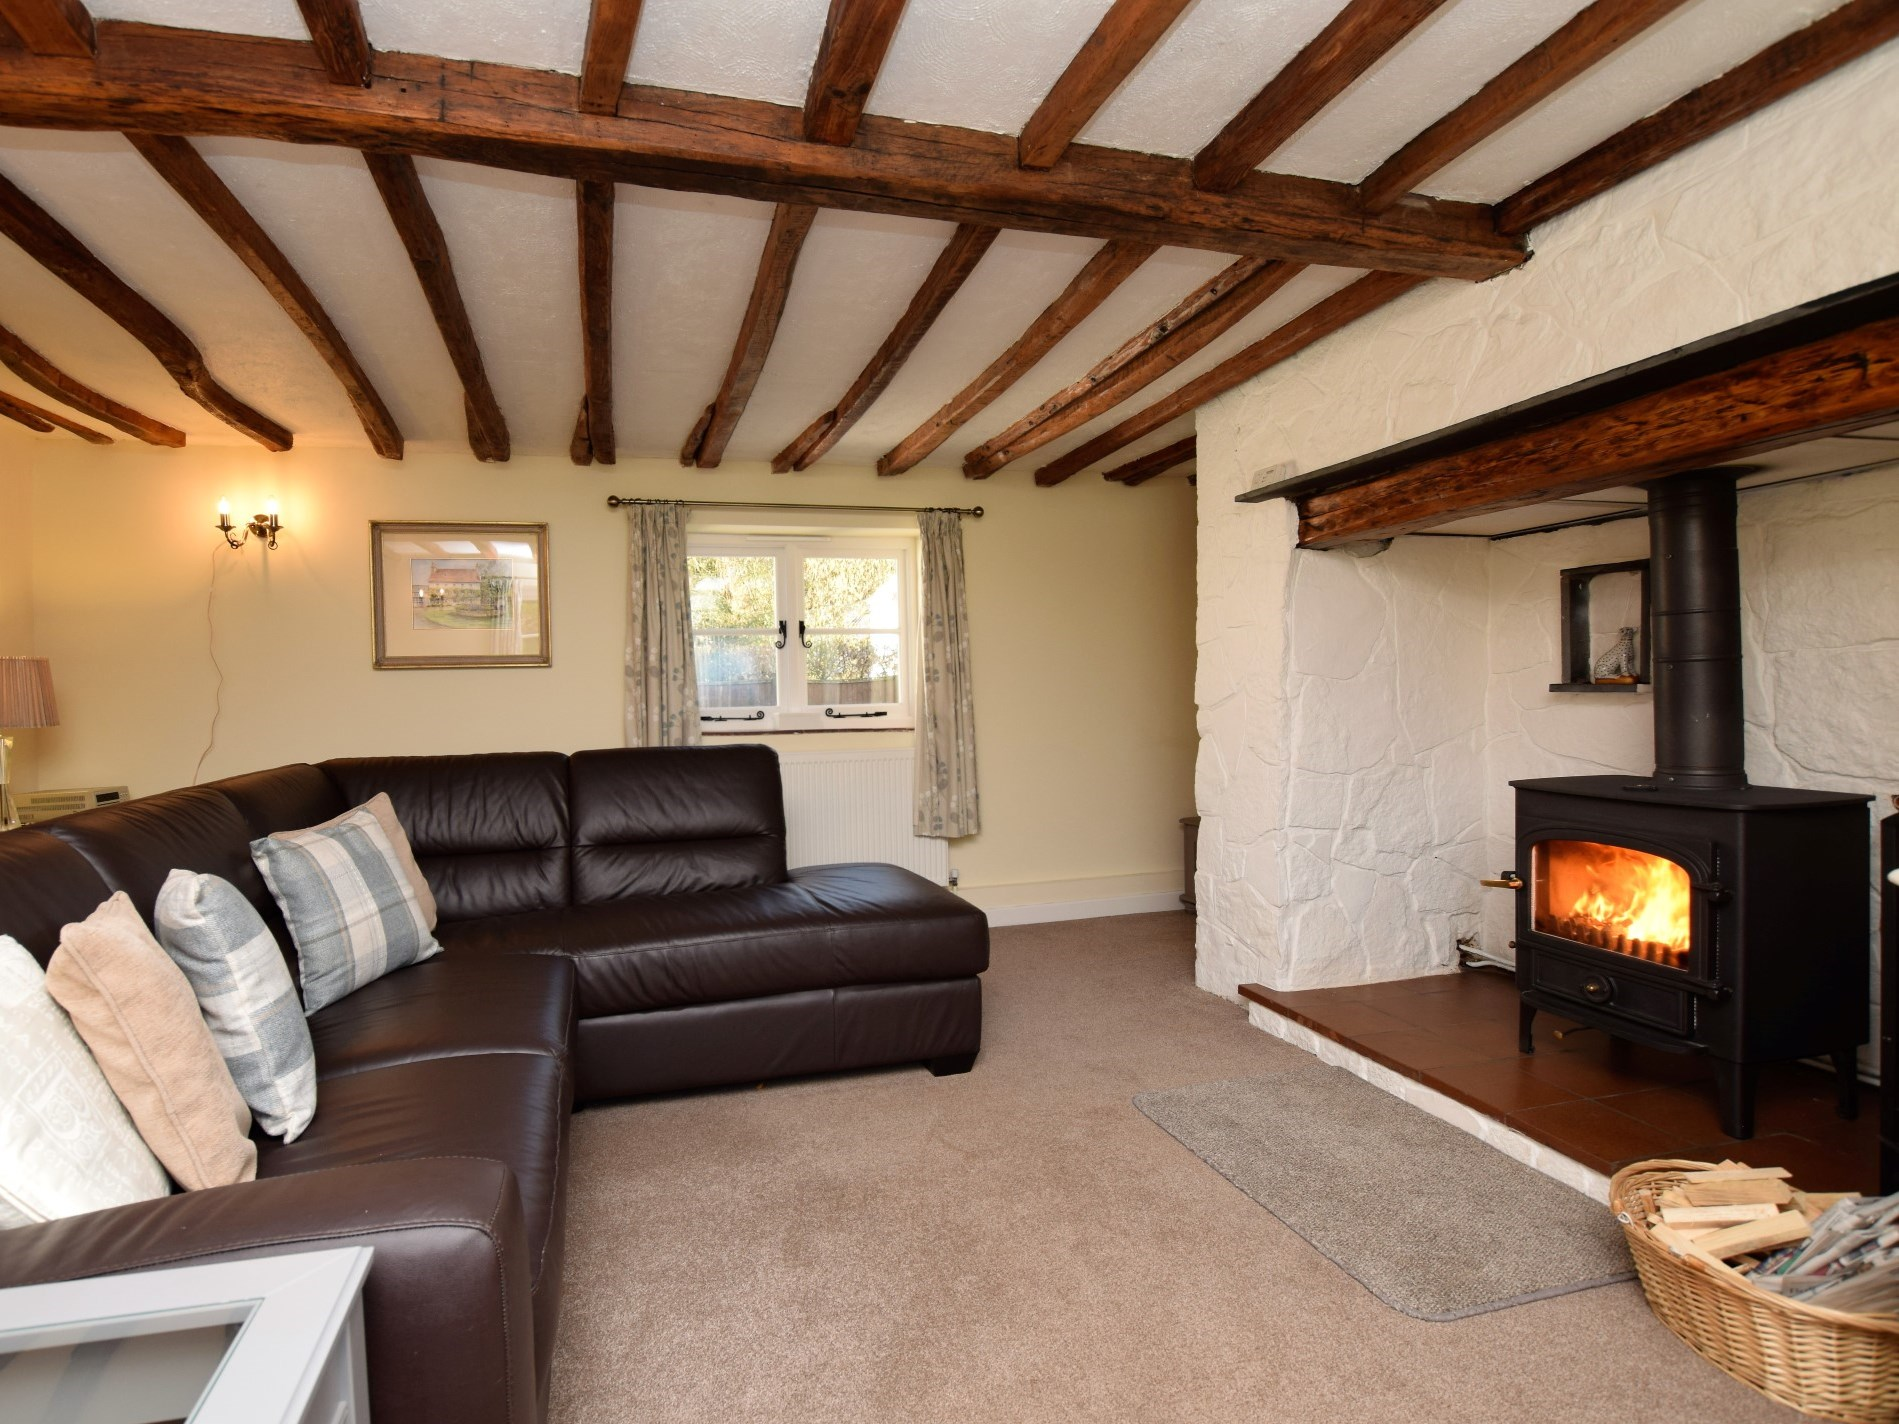 Warm your toes in front of the woodburner